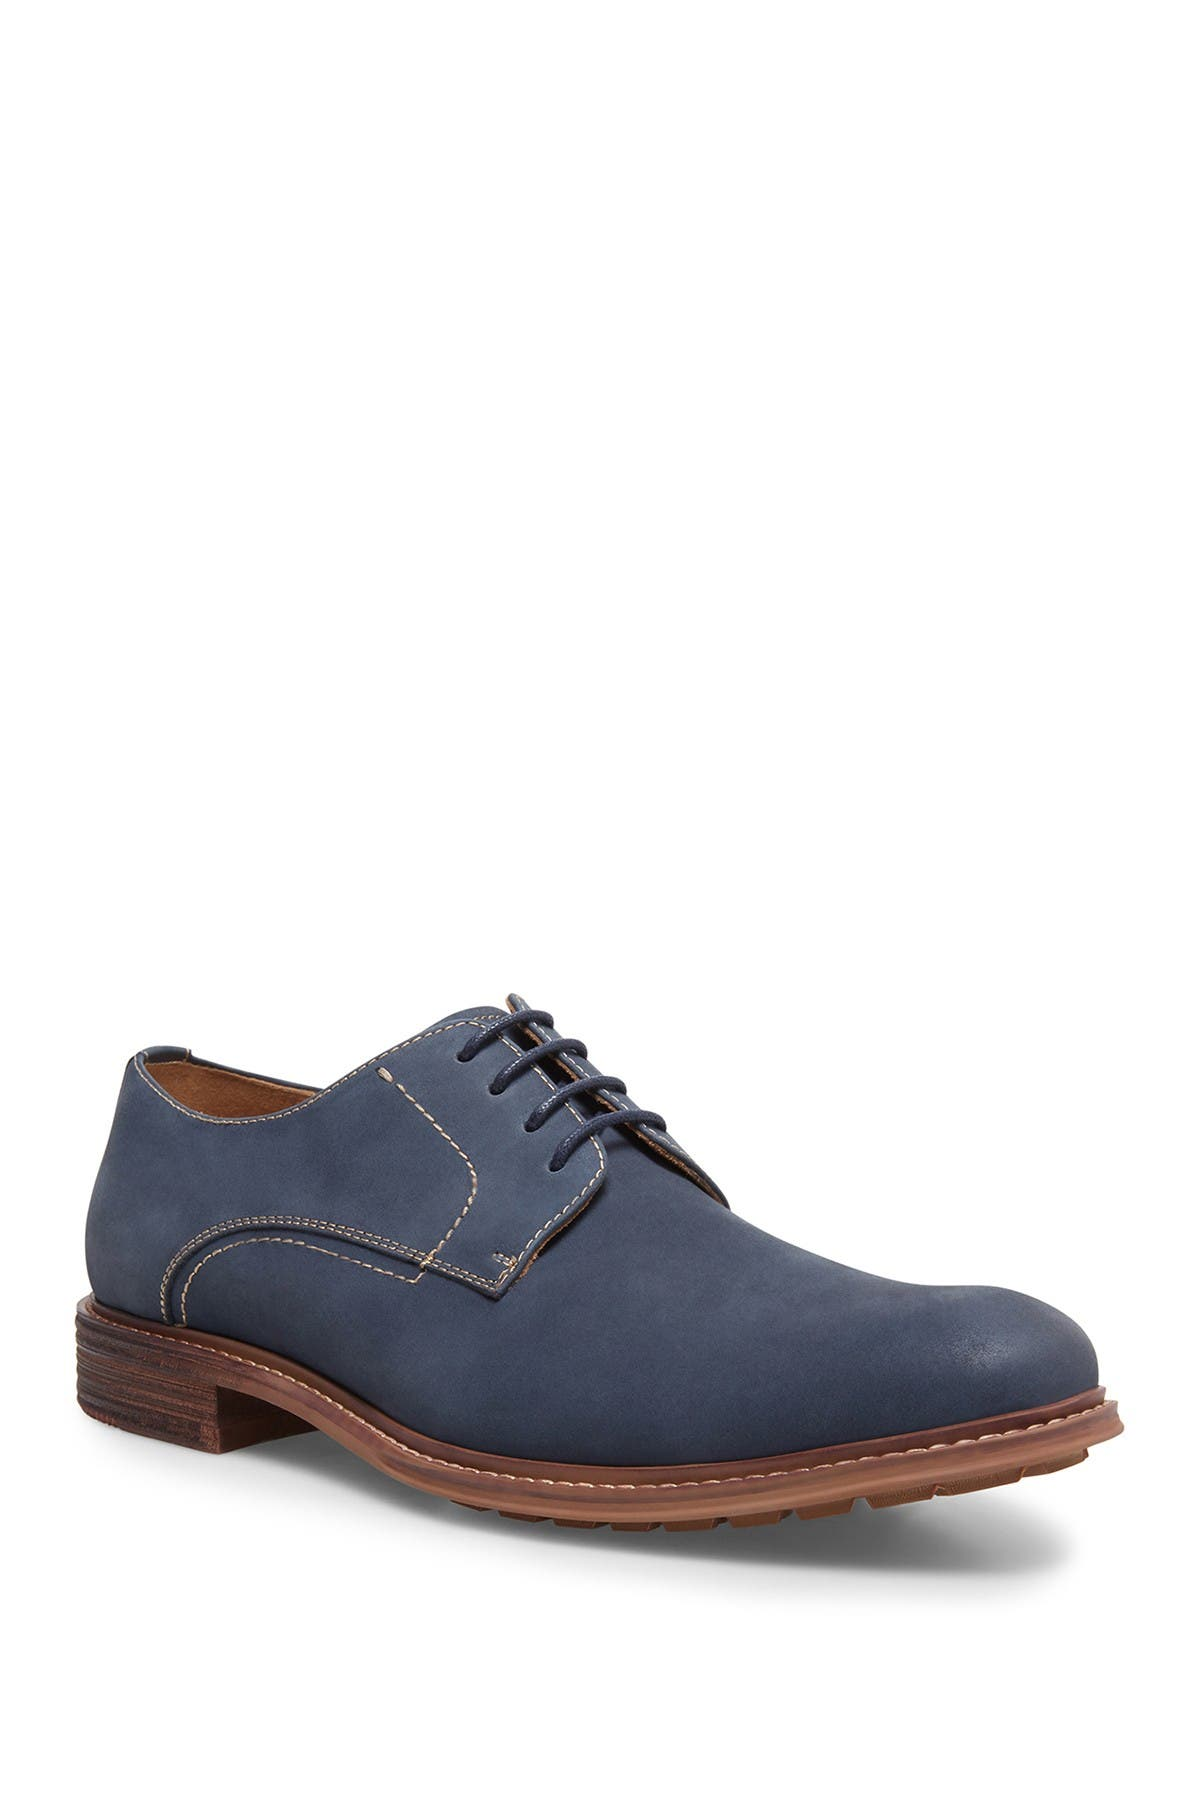 Image of Steve Madden Williem Leather Derby